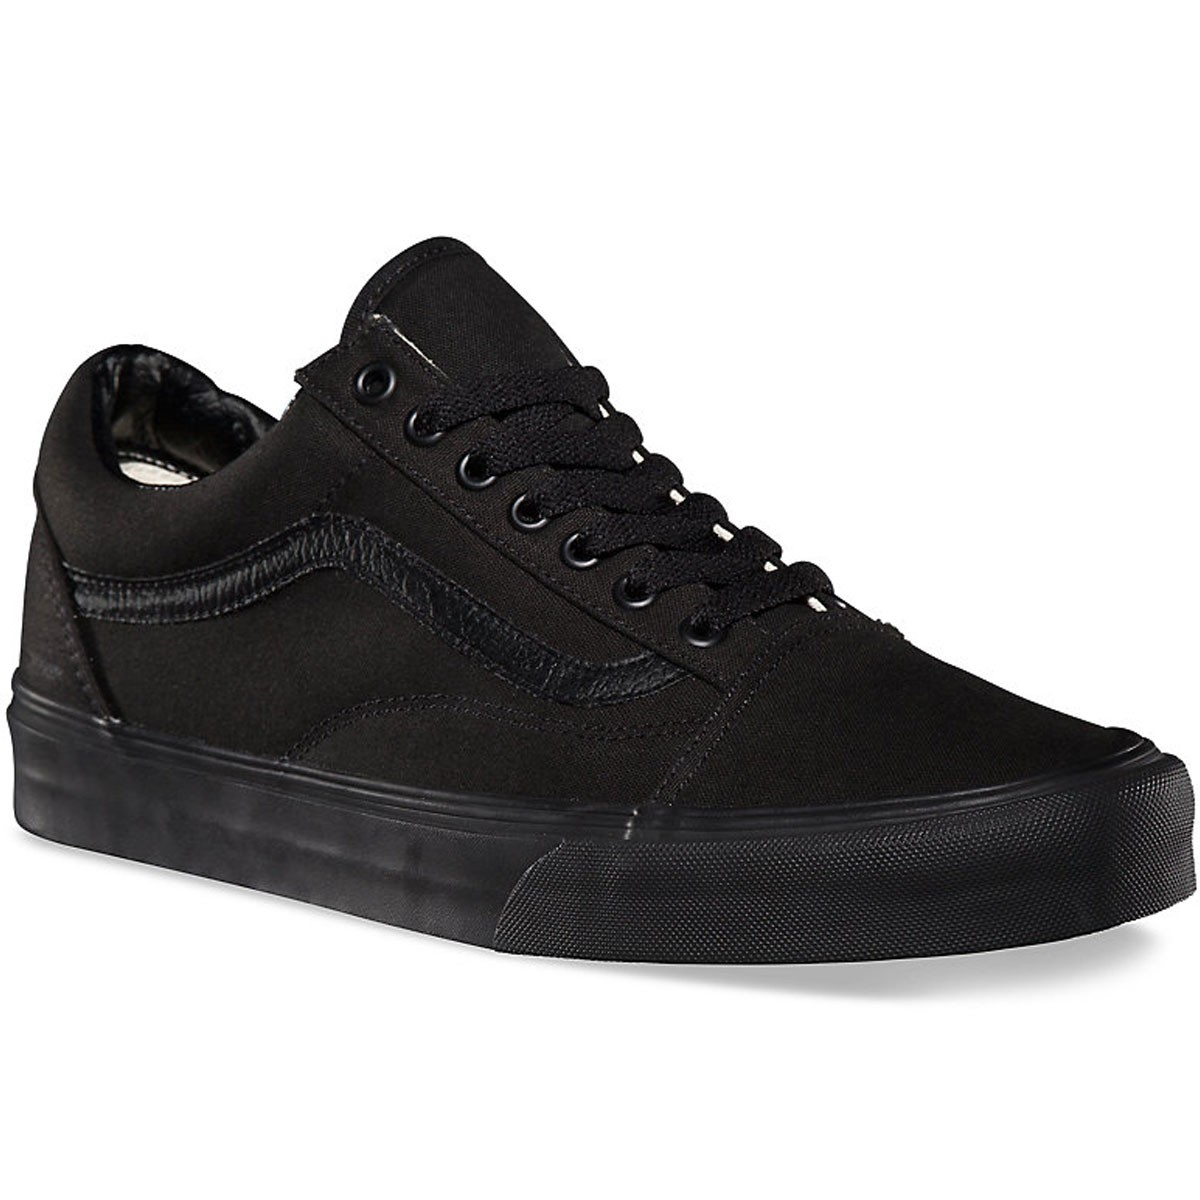 Vans Old Skool Core Classic Shoes - Black/Black - 9.0